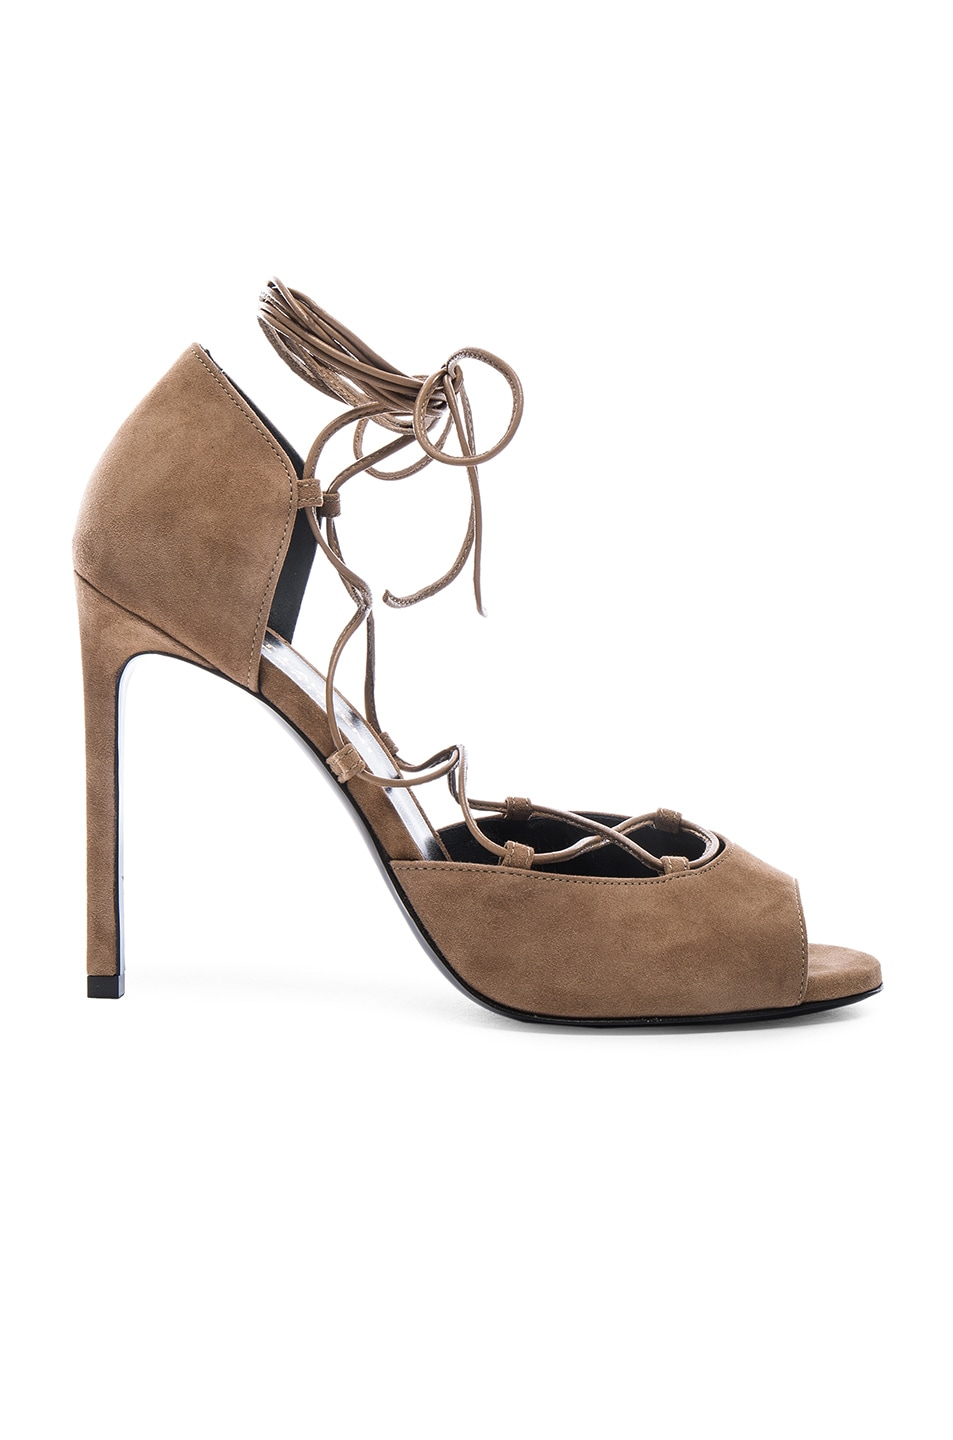 Image 1 of Saint Laurent Suede Kate Lace Up Heels in Chamois